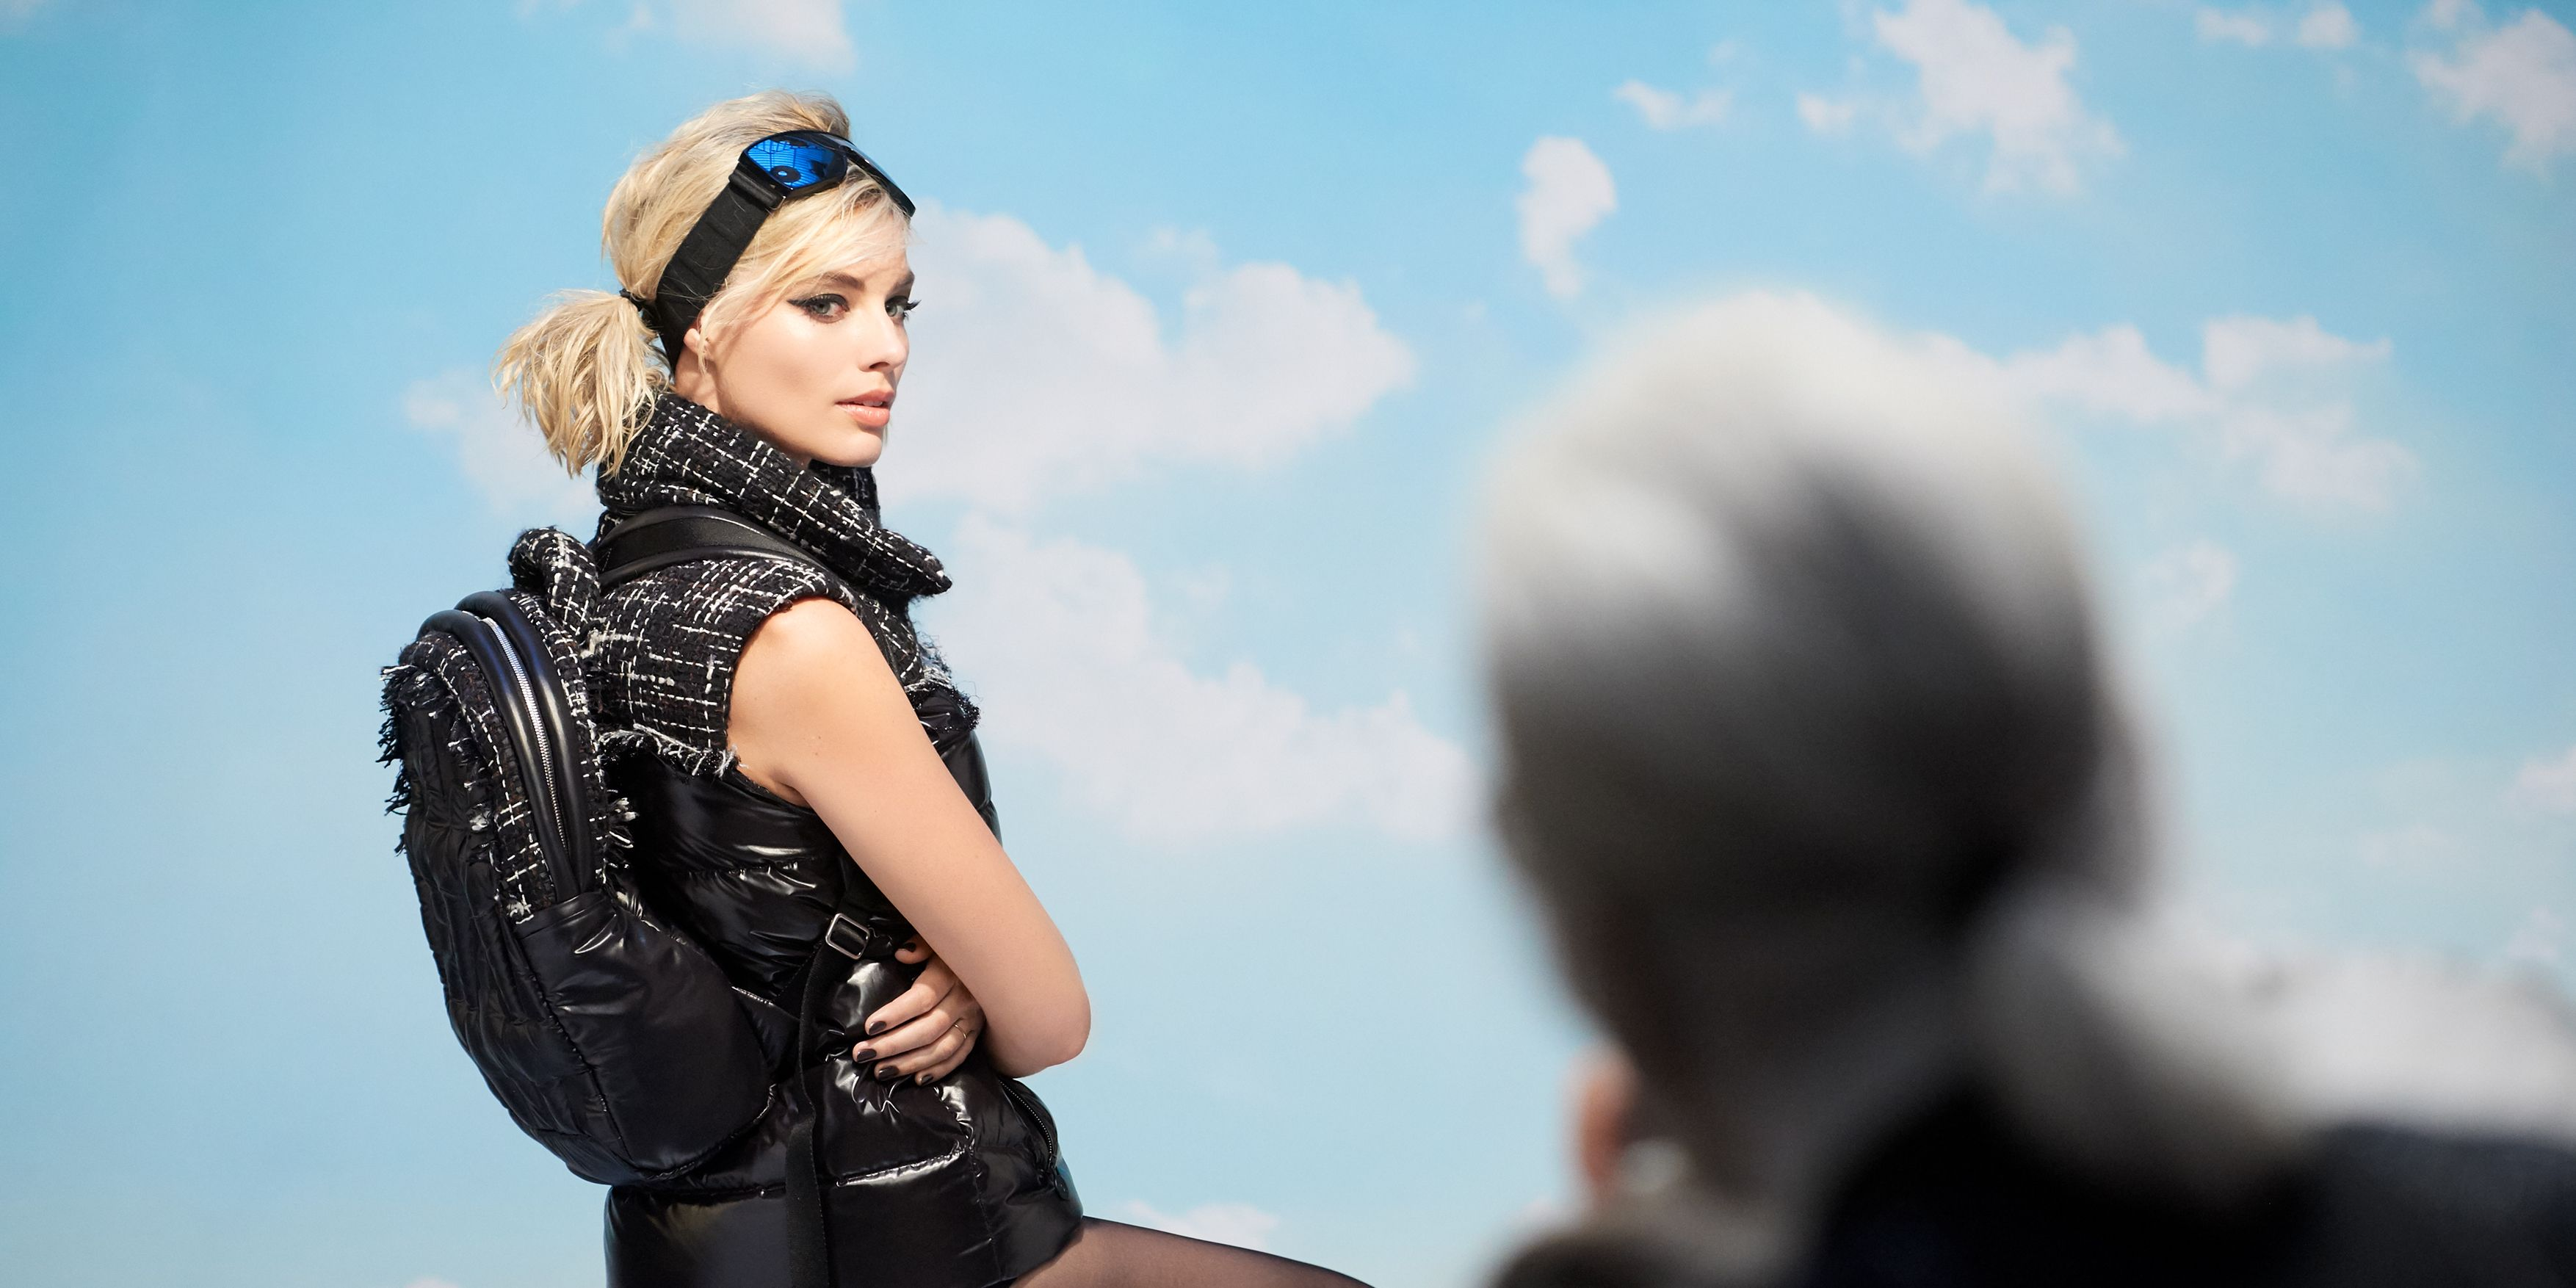 Margot Robbie's first Chanel campaign - behind the scenes